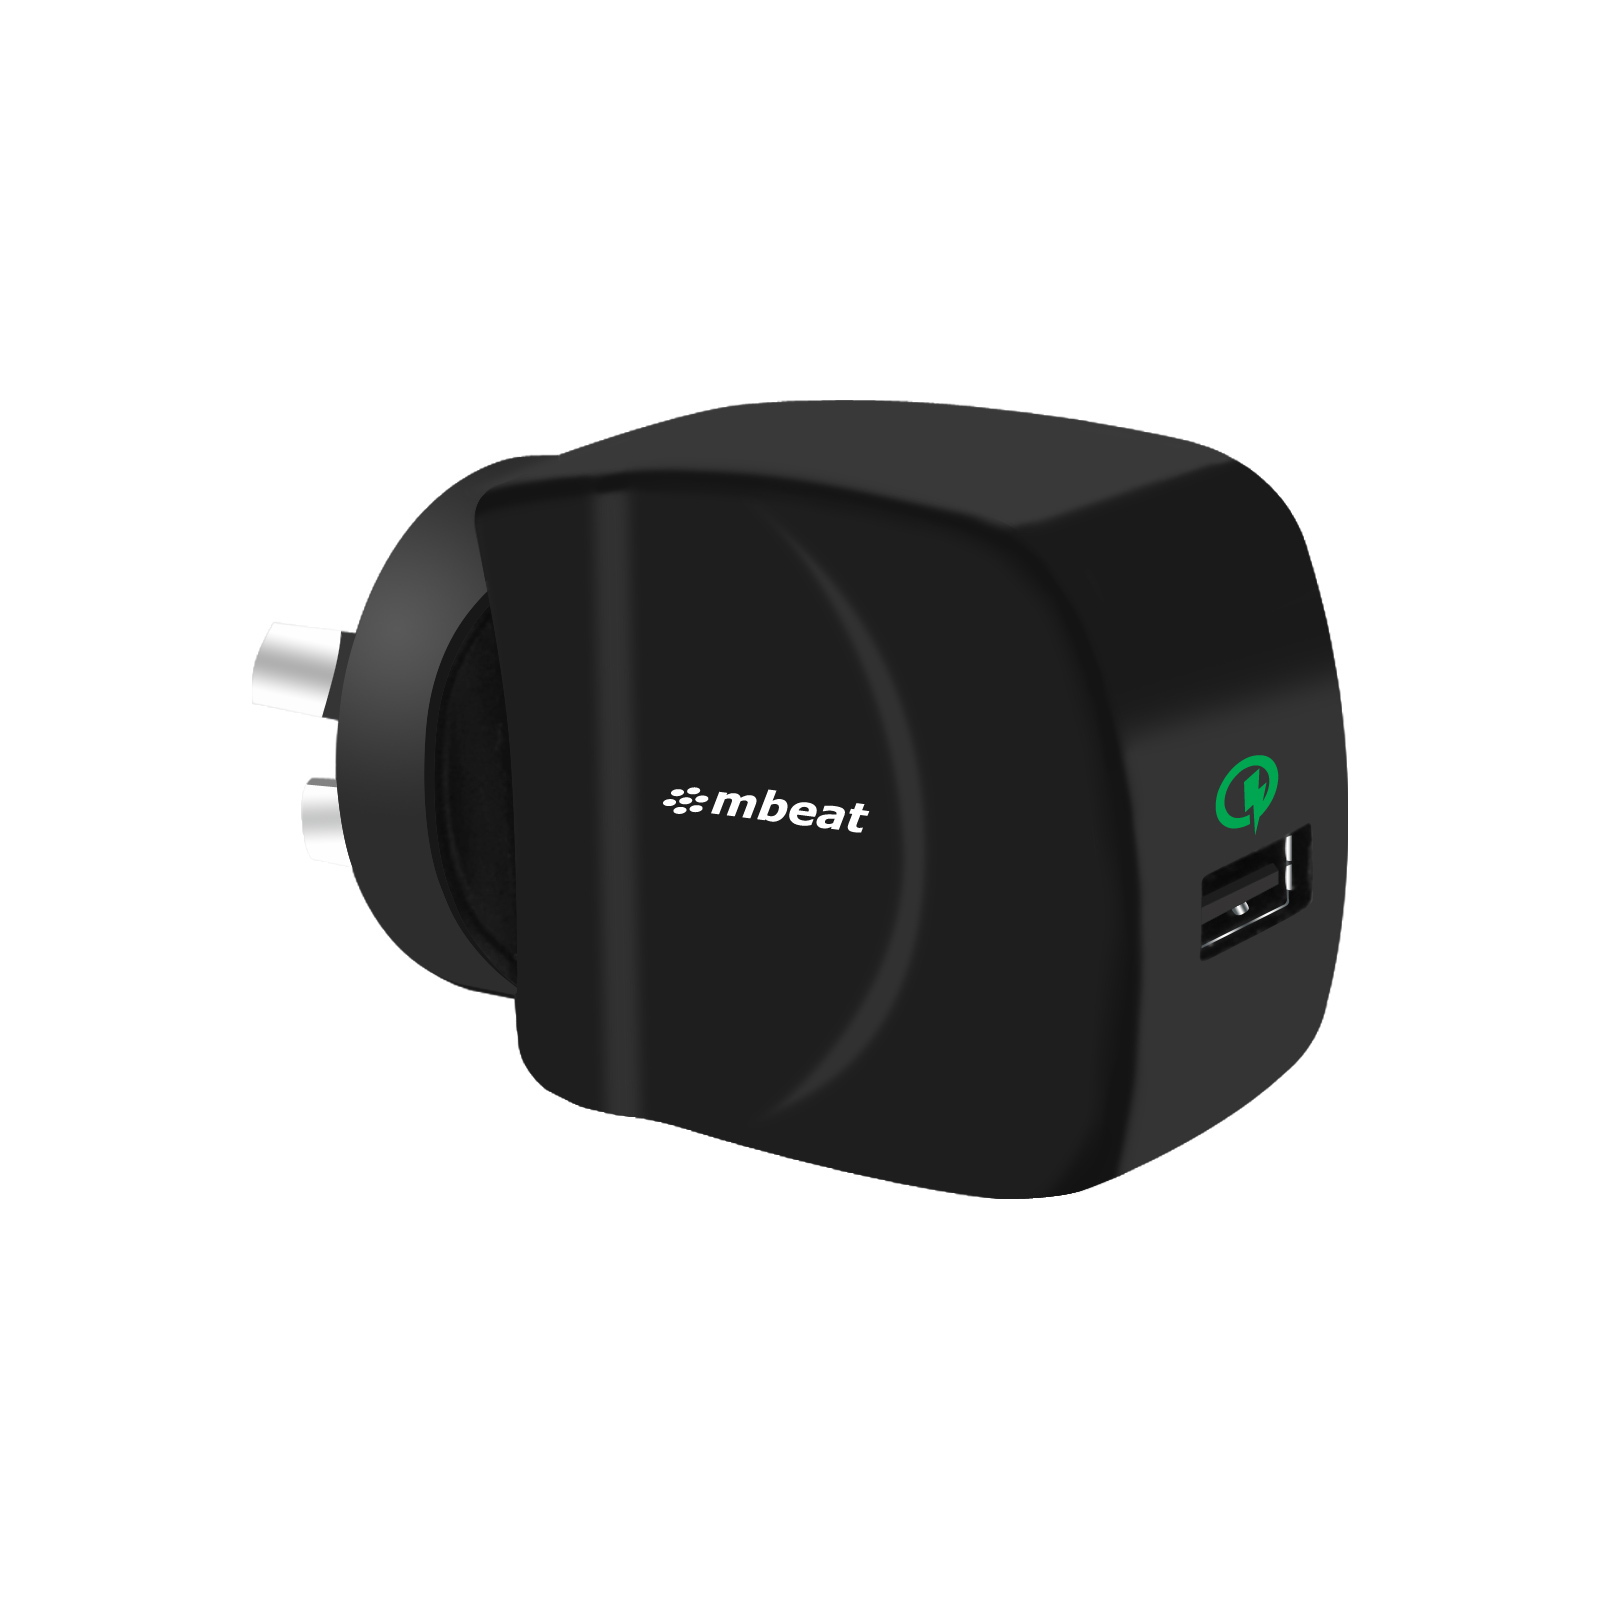 mbeat® Gorilla Power QC Qualcomm Certified USB Quick Charge2.0 Charger